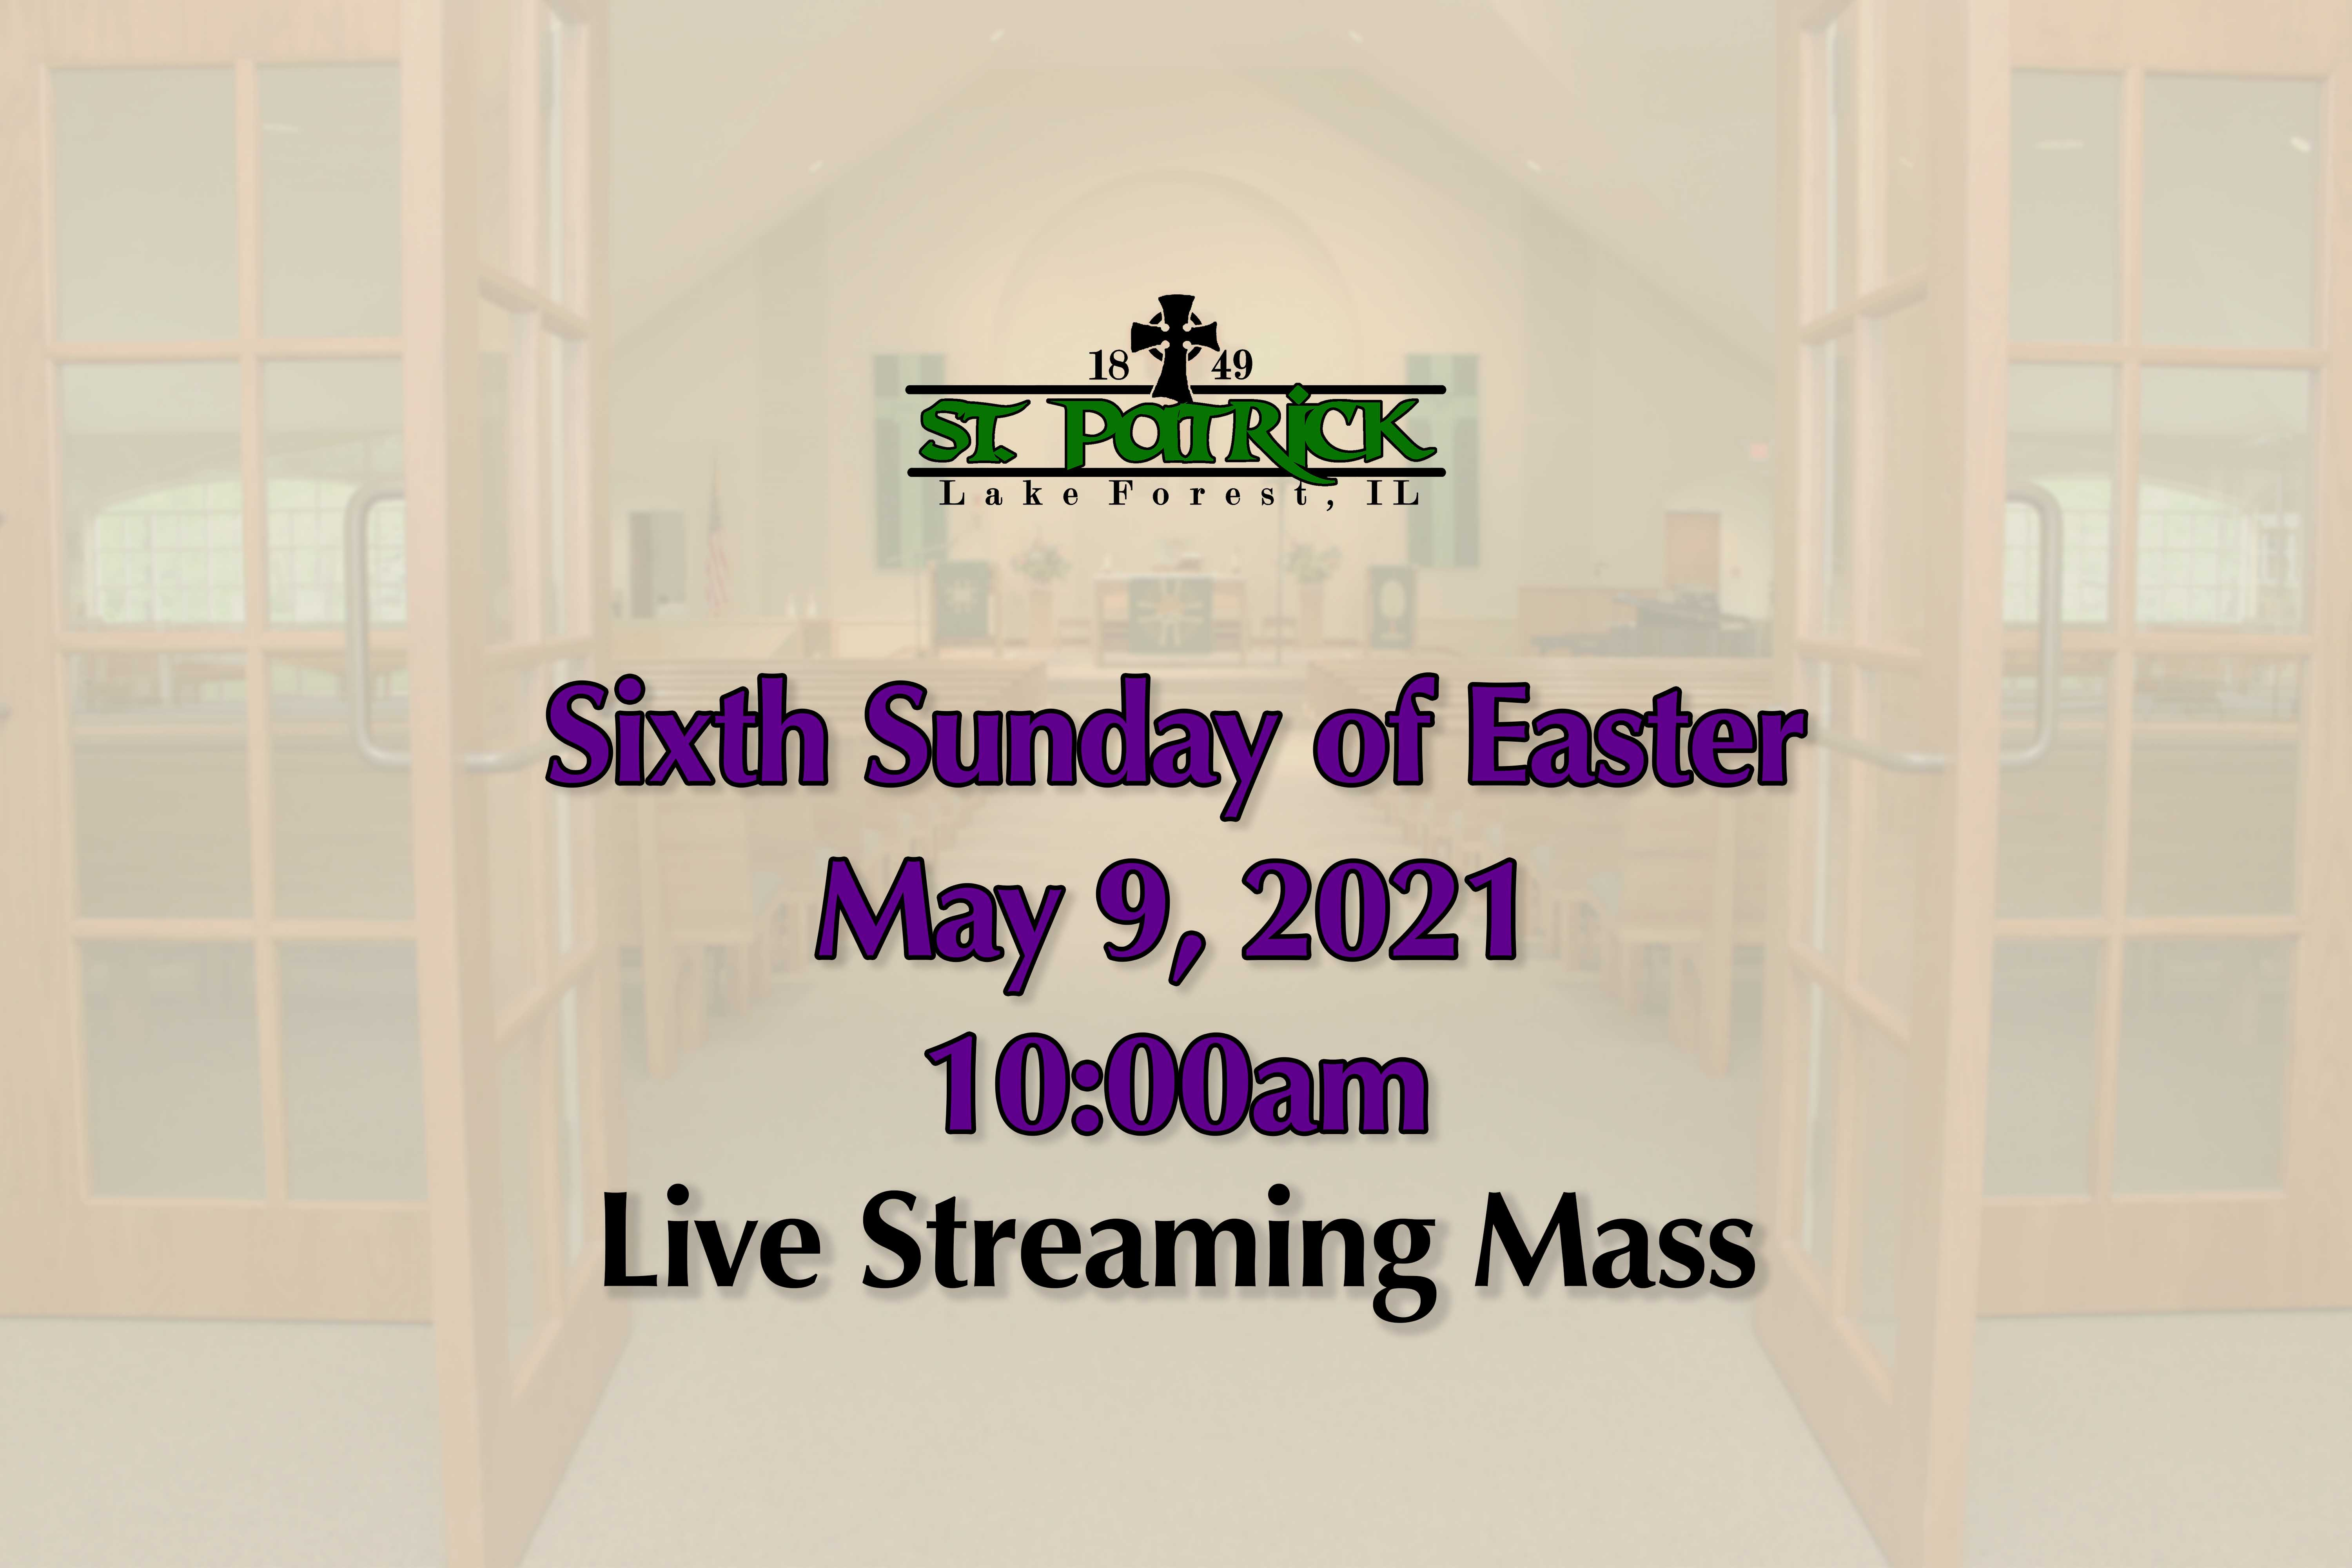 Live Streaming Mass 05-09-21 website ad